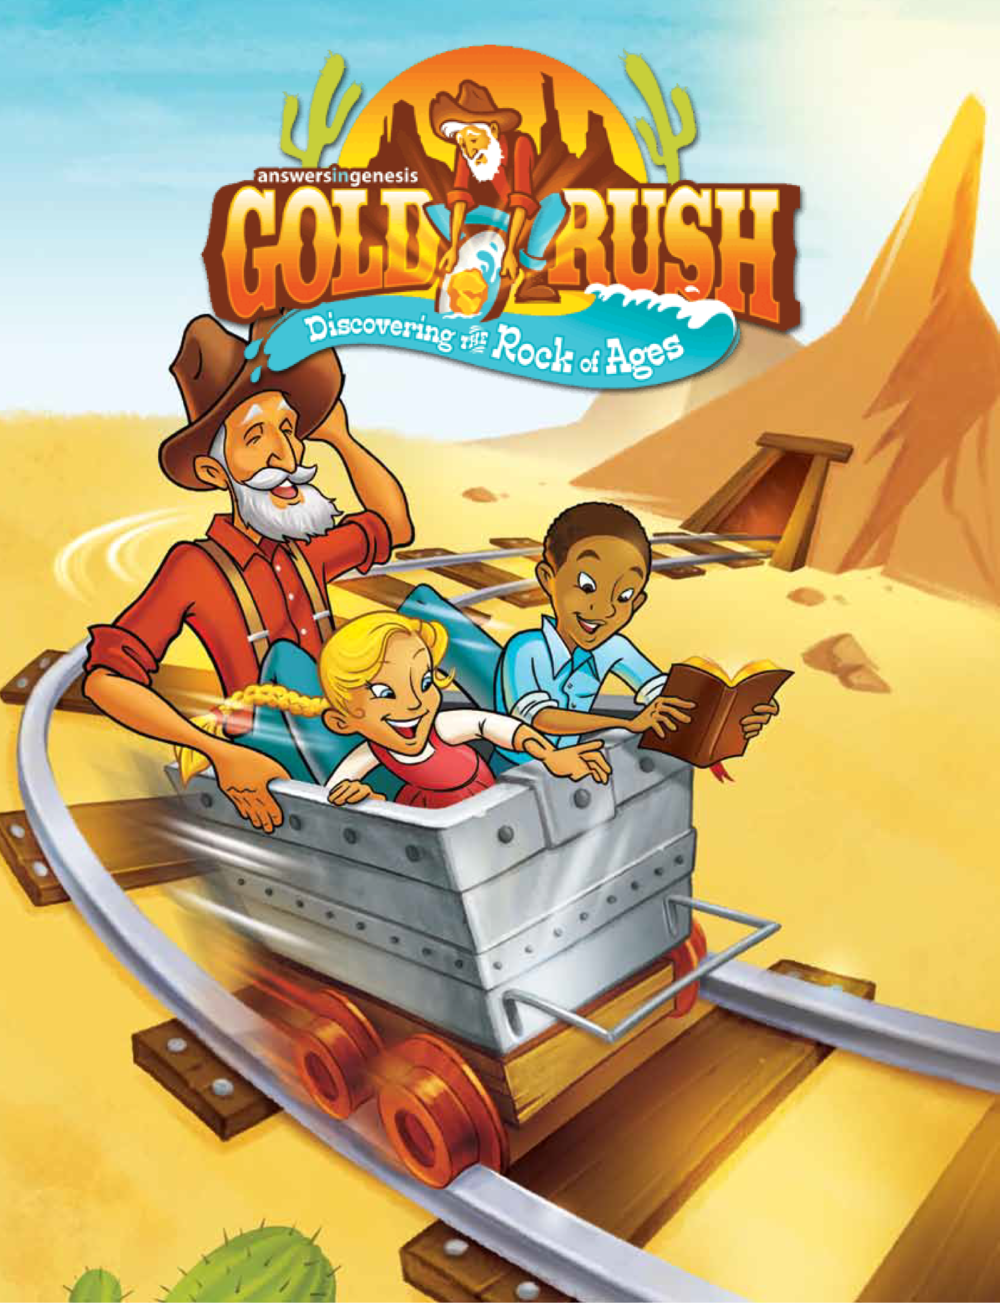 goldrush-web-marketing-01.png